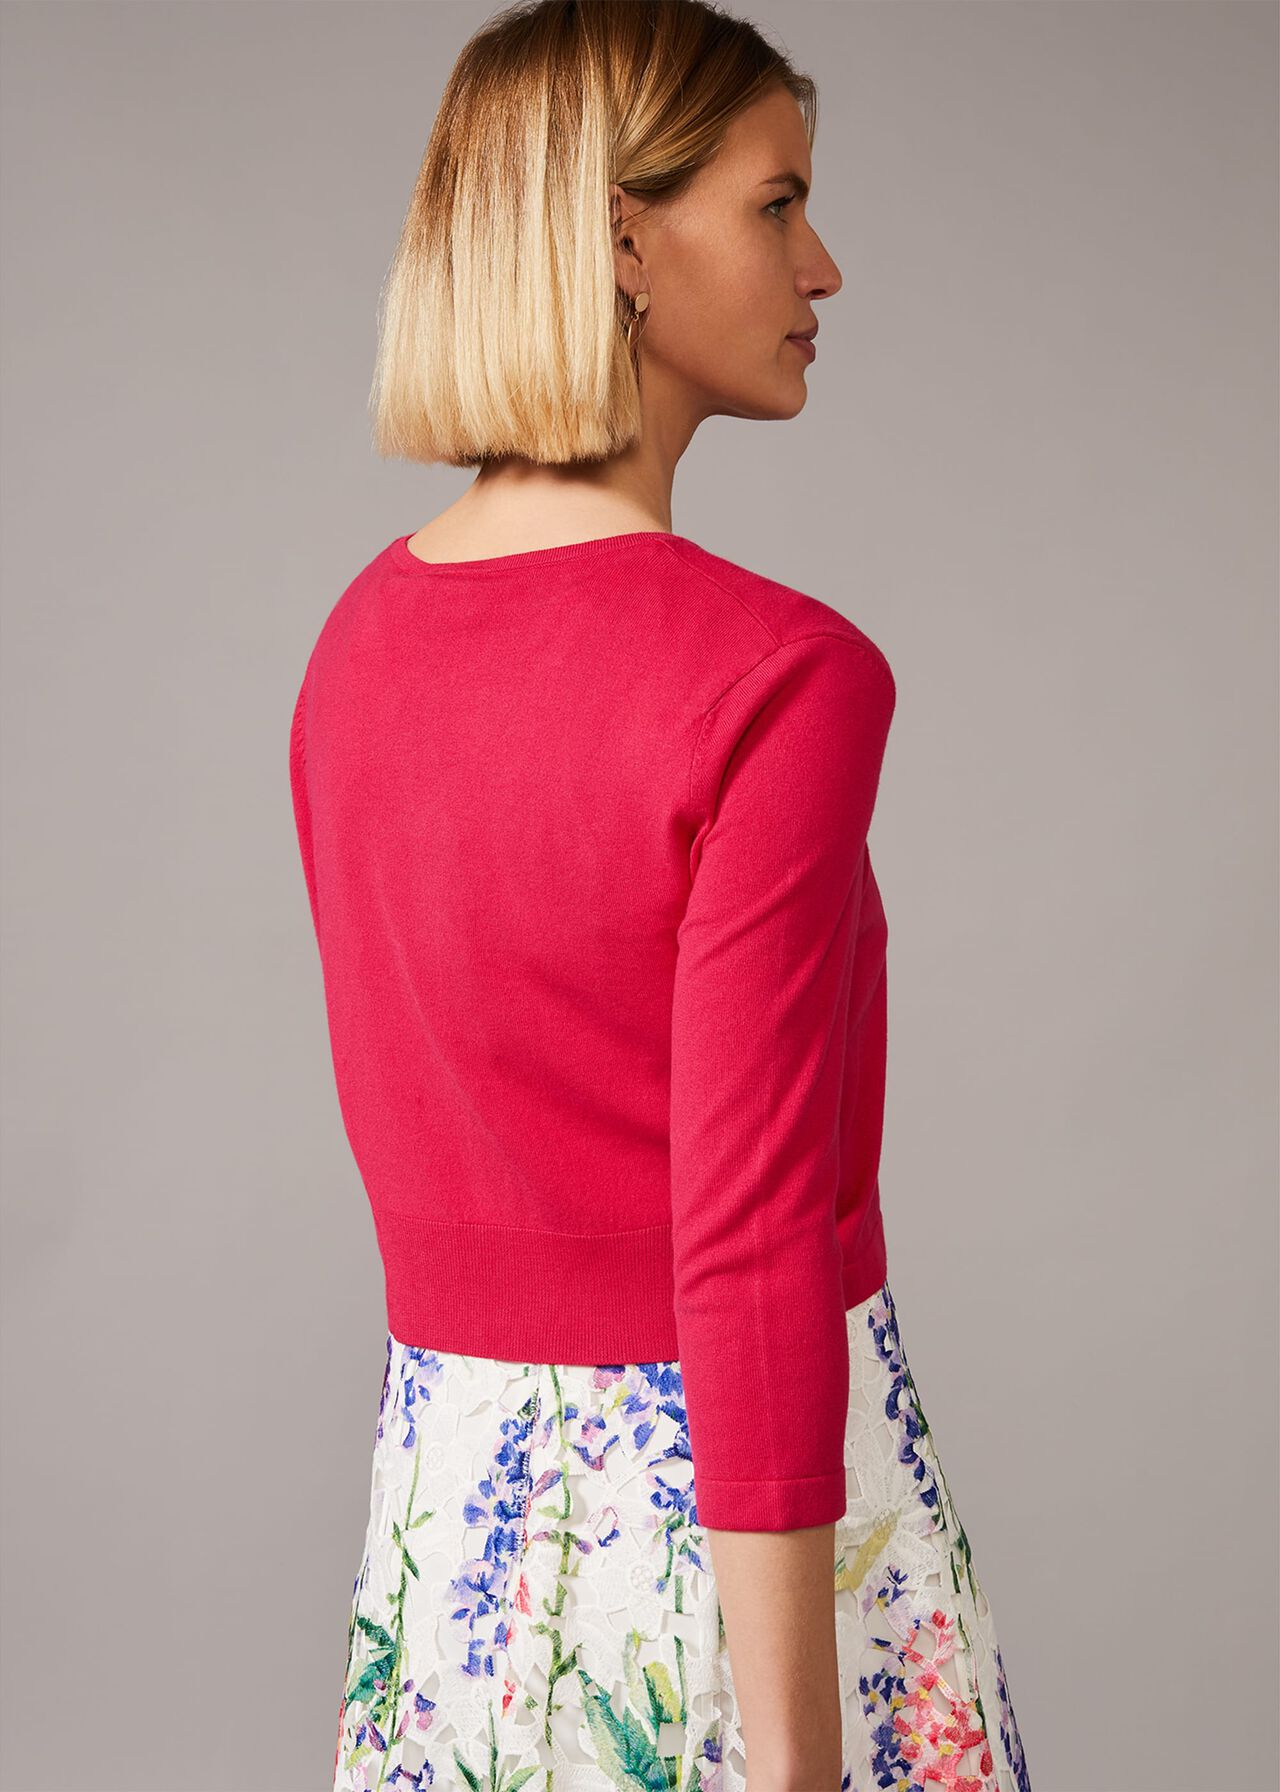 Catie Cropped Cardigan